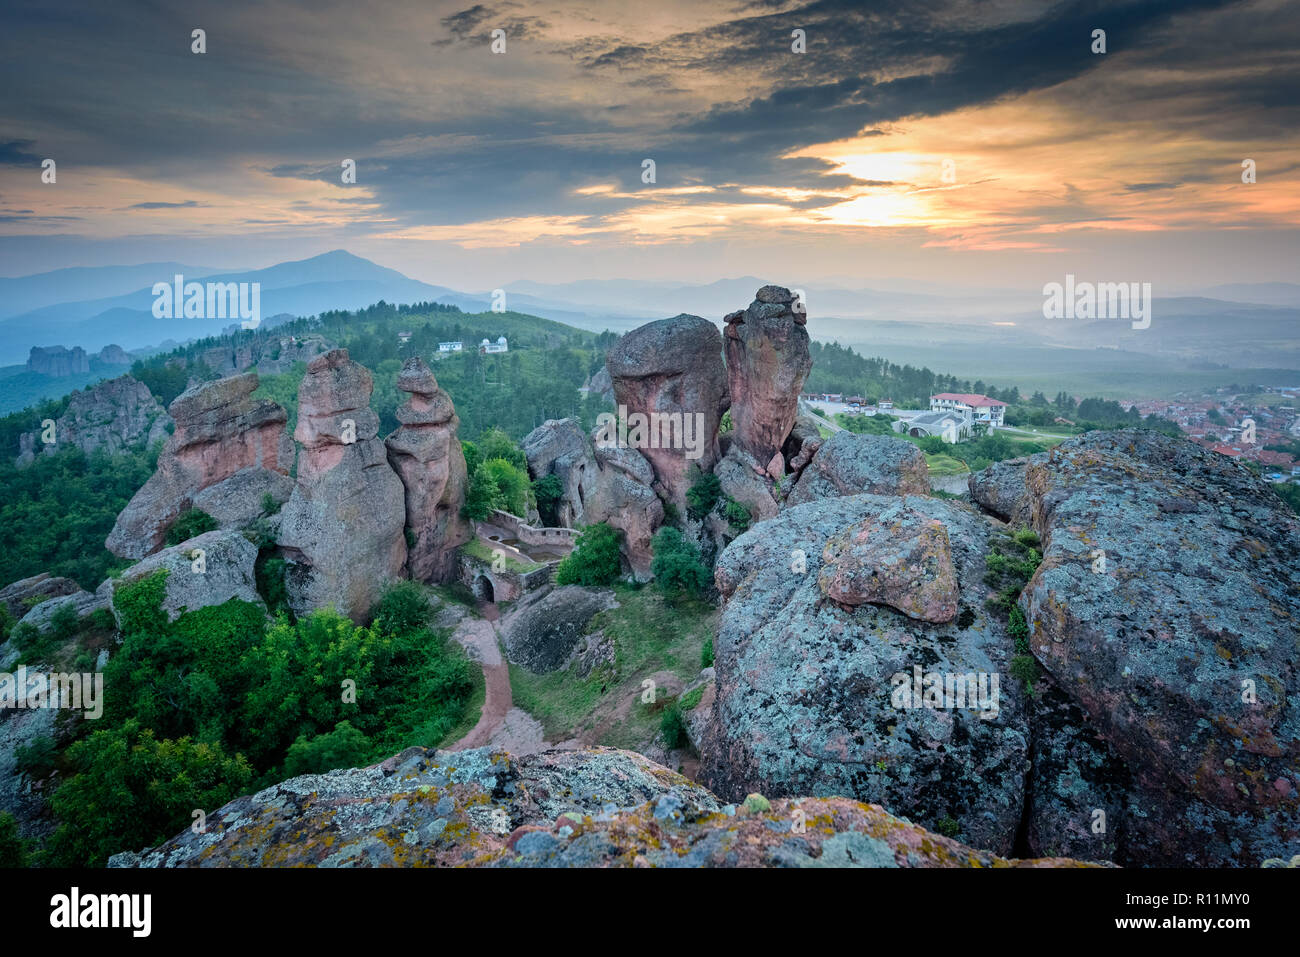 Amazing natural phenomenon - Belogradchik rocks - aerial shots of this beautiful rock formation, popular tourist destination - Stock Image